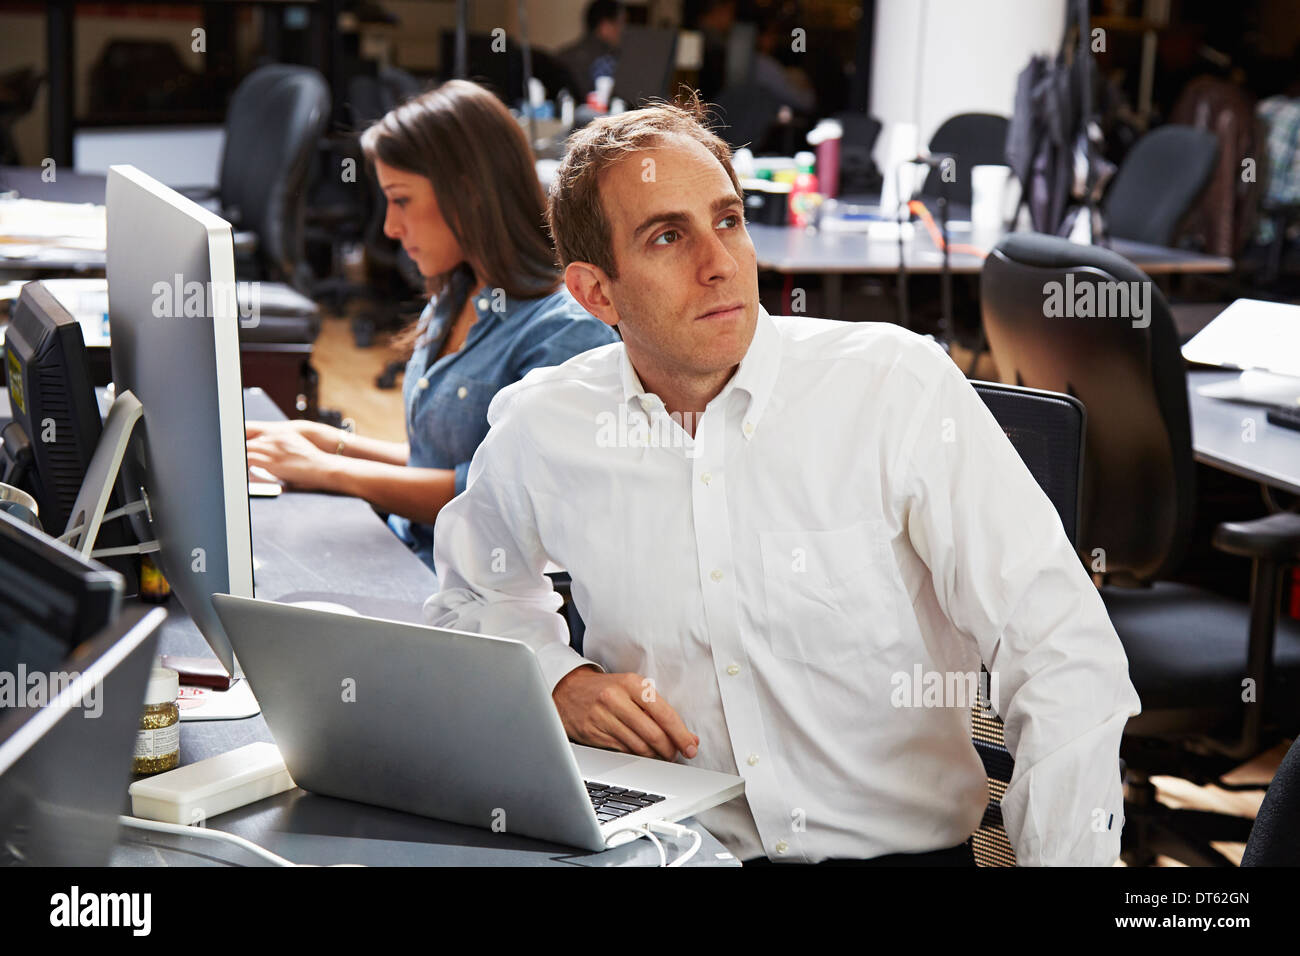 Mid adult man using laptop in office - Stock Image